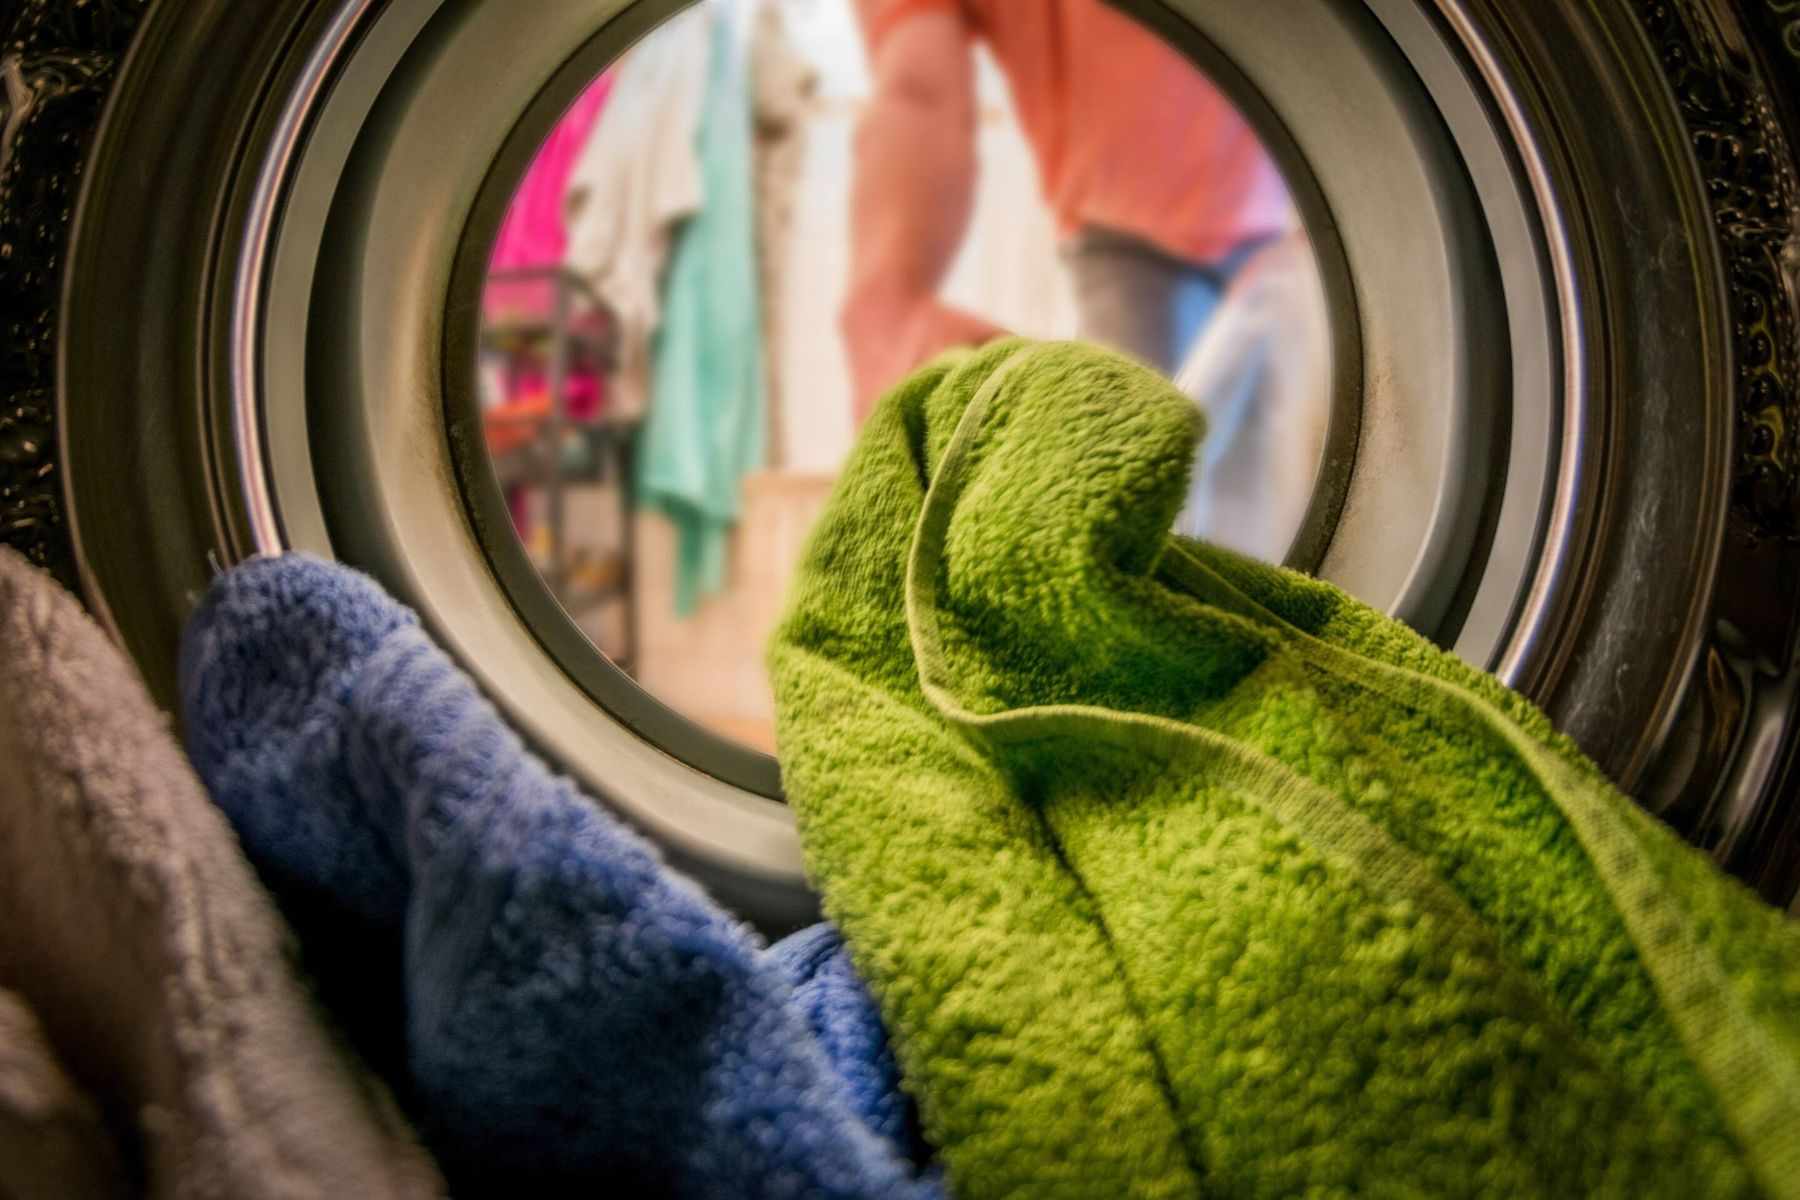 Five Items You Should Avoid Putting Into Your Washing Machine